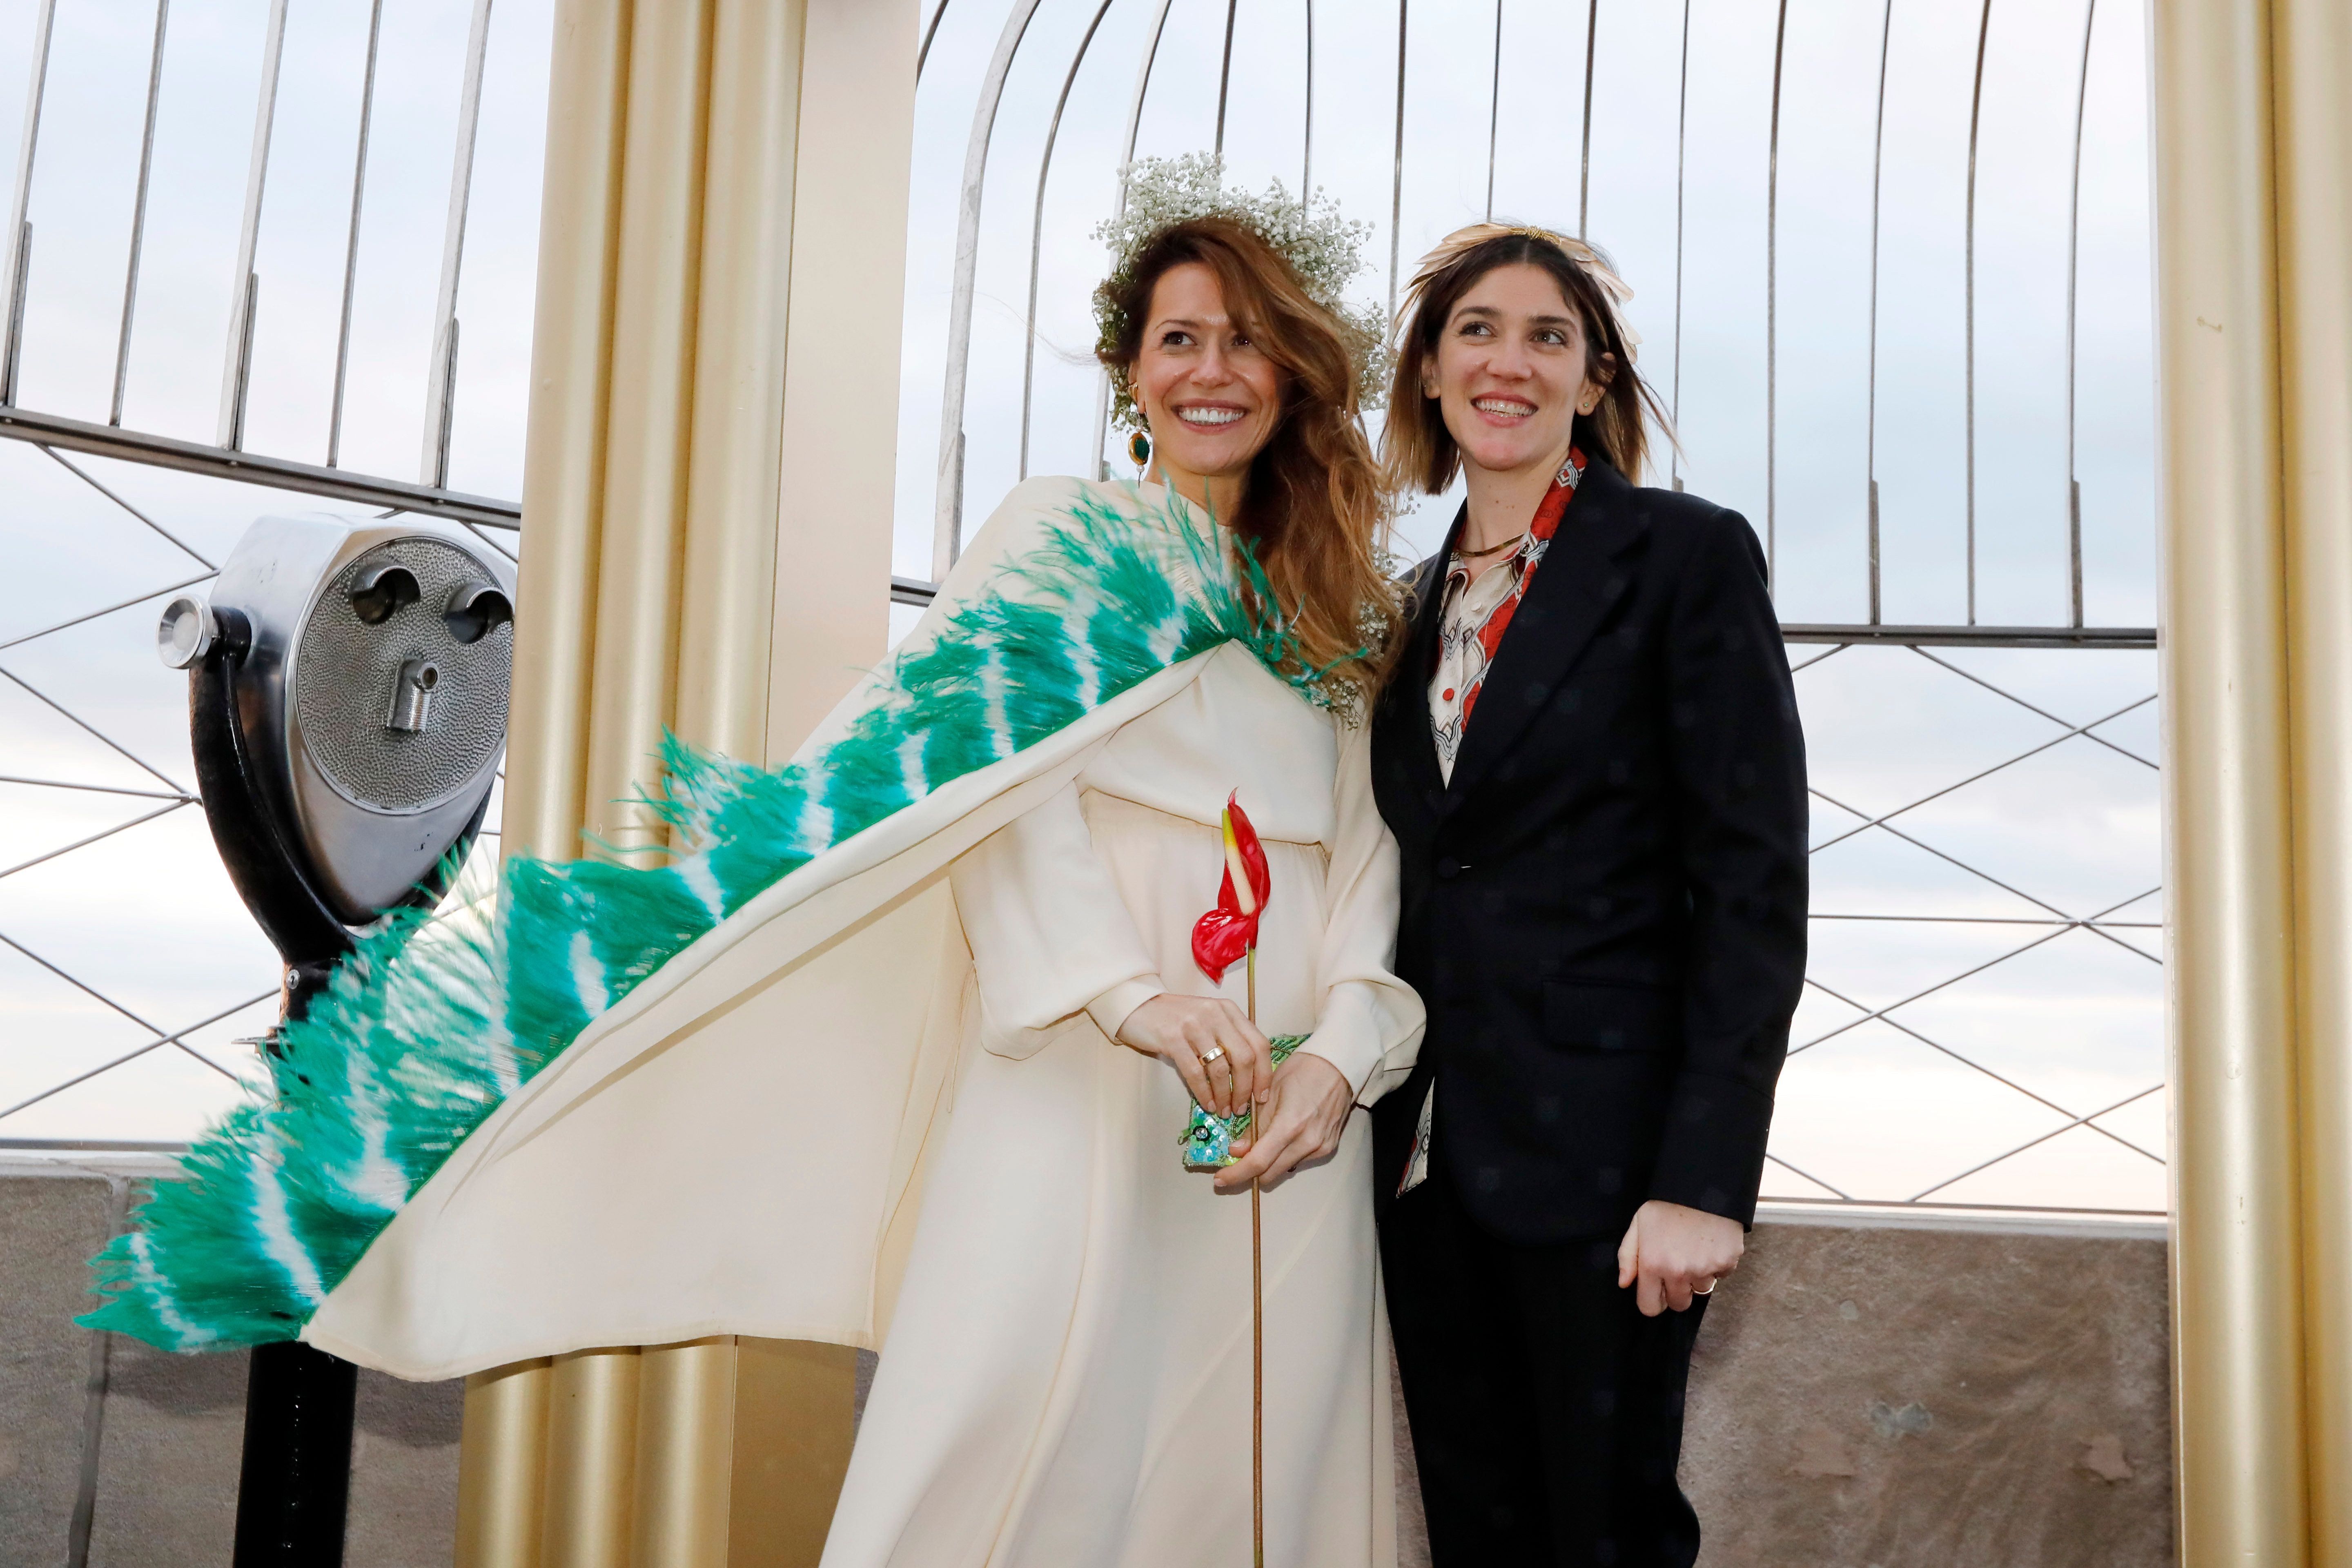 Helena Barquet, left, and Fabiana Faria, from New York, pose for photos after their Valentine's Day wedding on the Observation Deck of the Empire State Building, in New York, Thursday, Feb. 14, 2019. (AP Photo/Richard Drew)